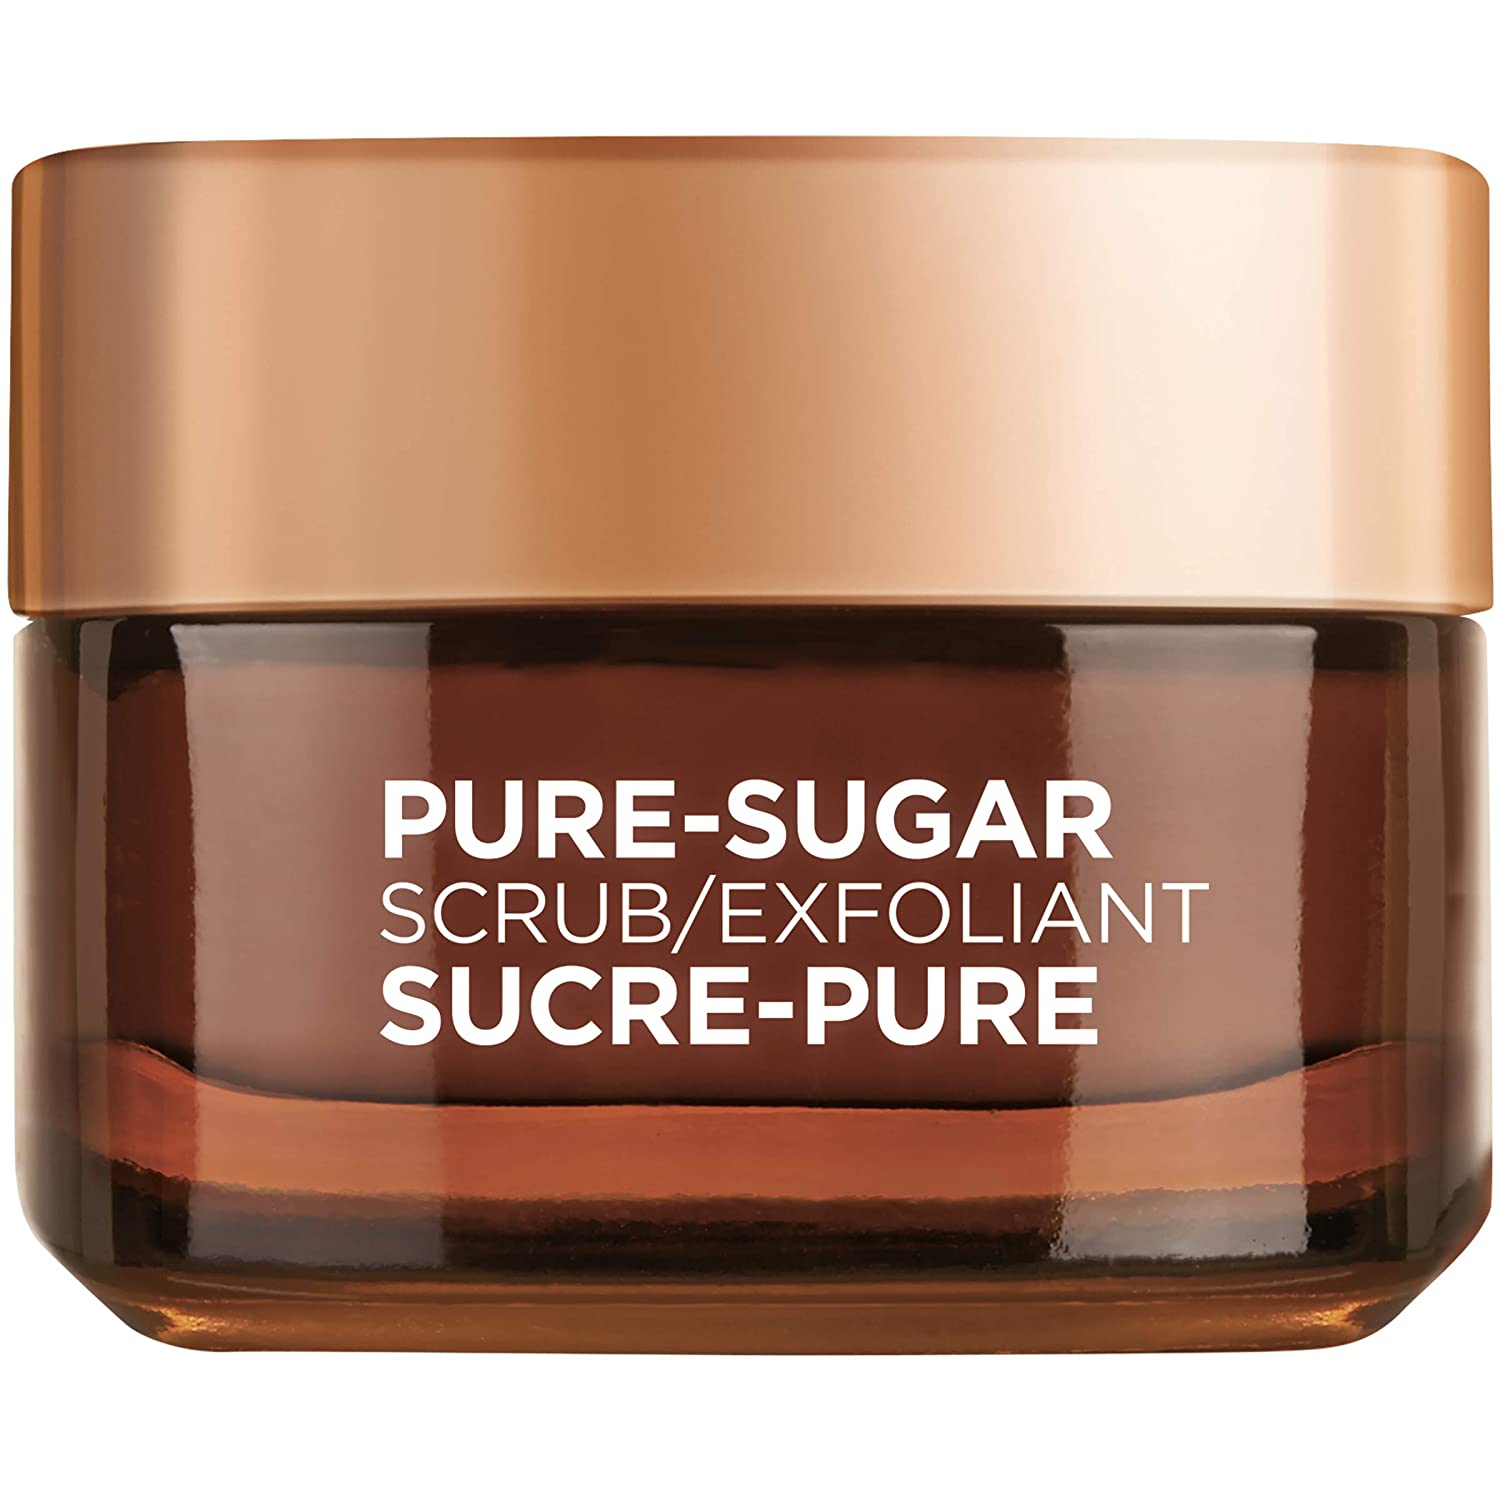 L'Oreal Paris Pure-Sugar Scrub with 3 Fine Sugars + Cocoa, Face & Lips, For Dry Skin, 50 ml L'Oreal Paris